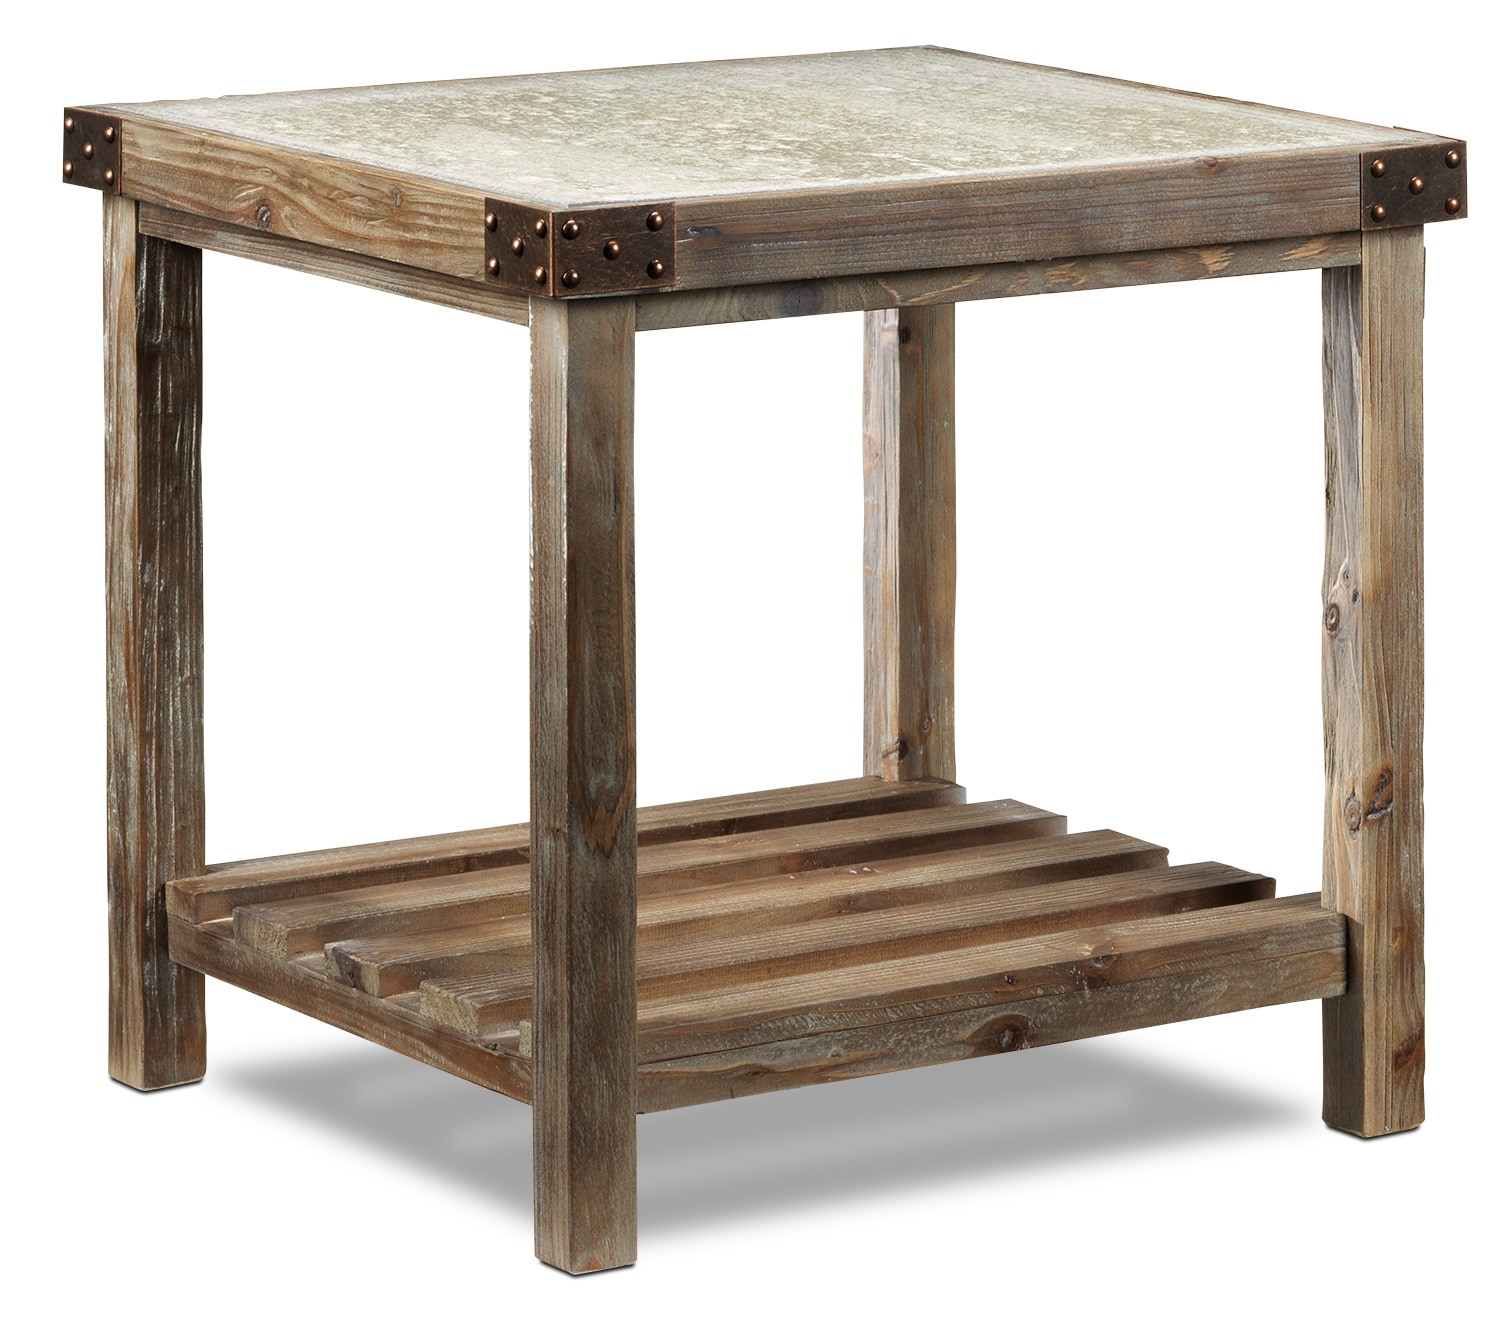 Accent and Occasional Furniture - Brisdale End Table - Natural Beige